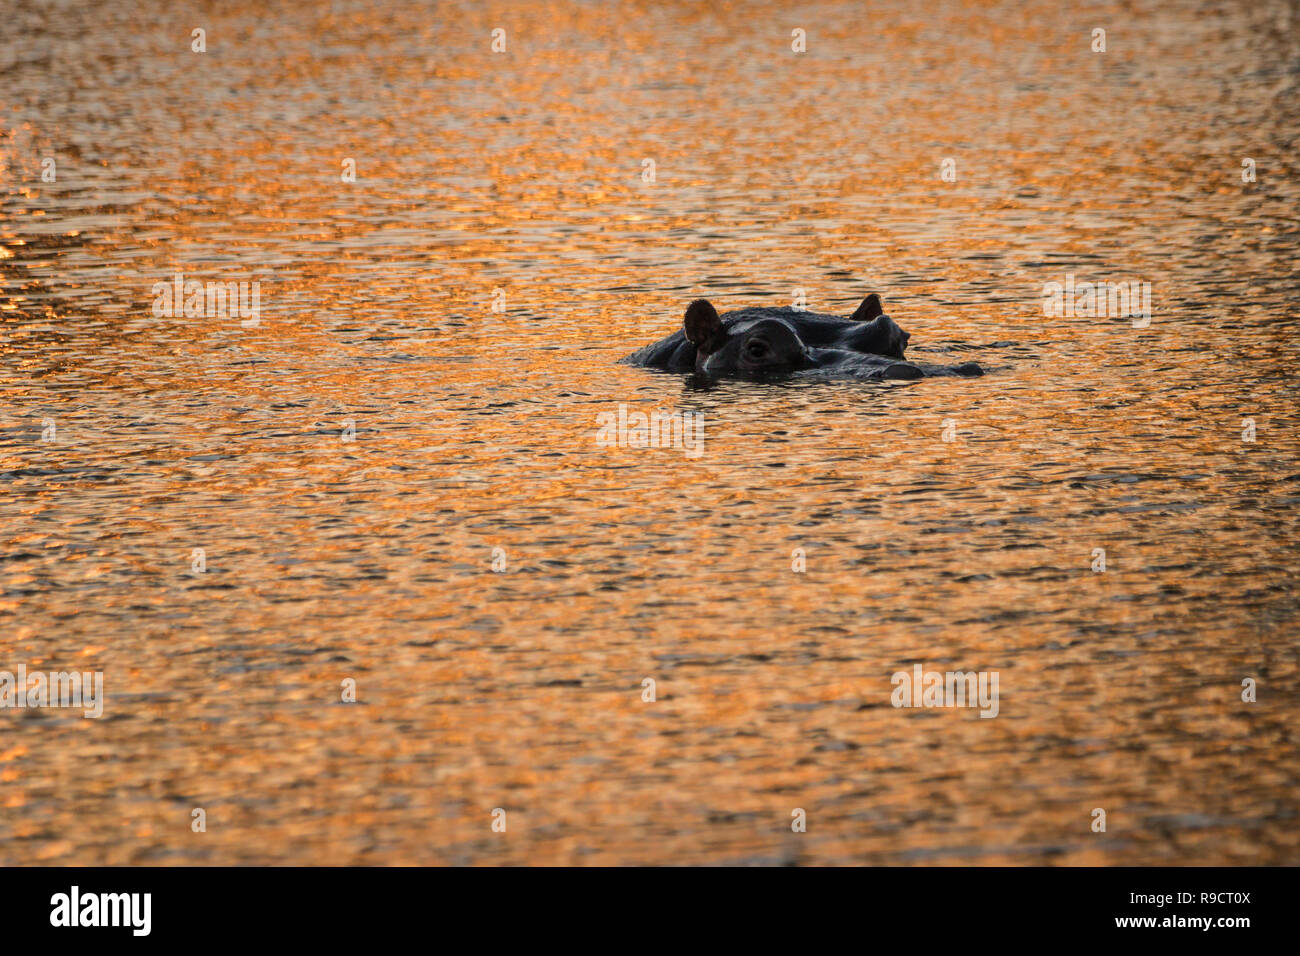 Lone hippo in water - Stock Image